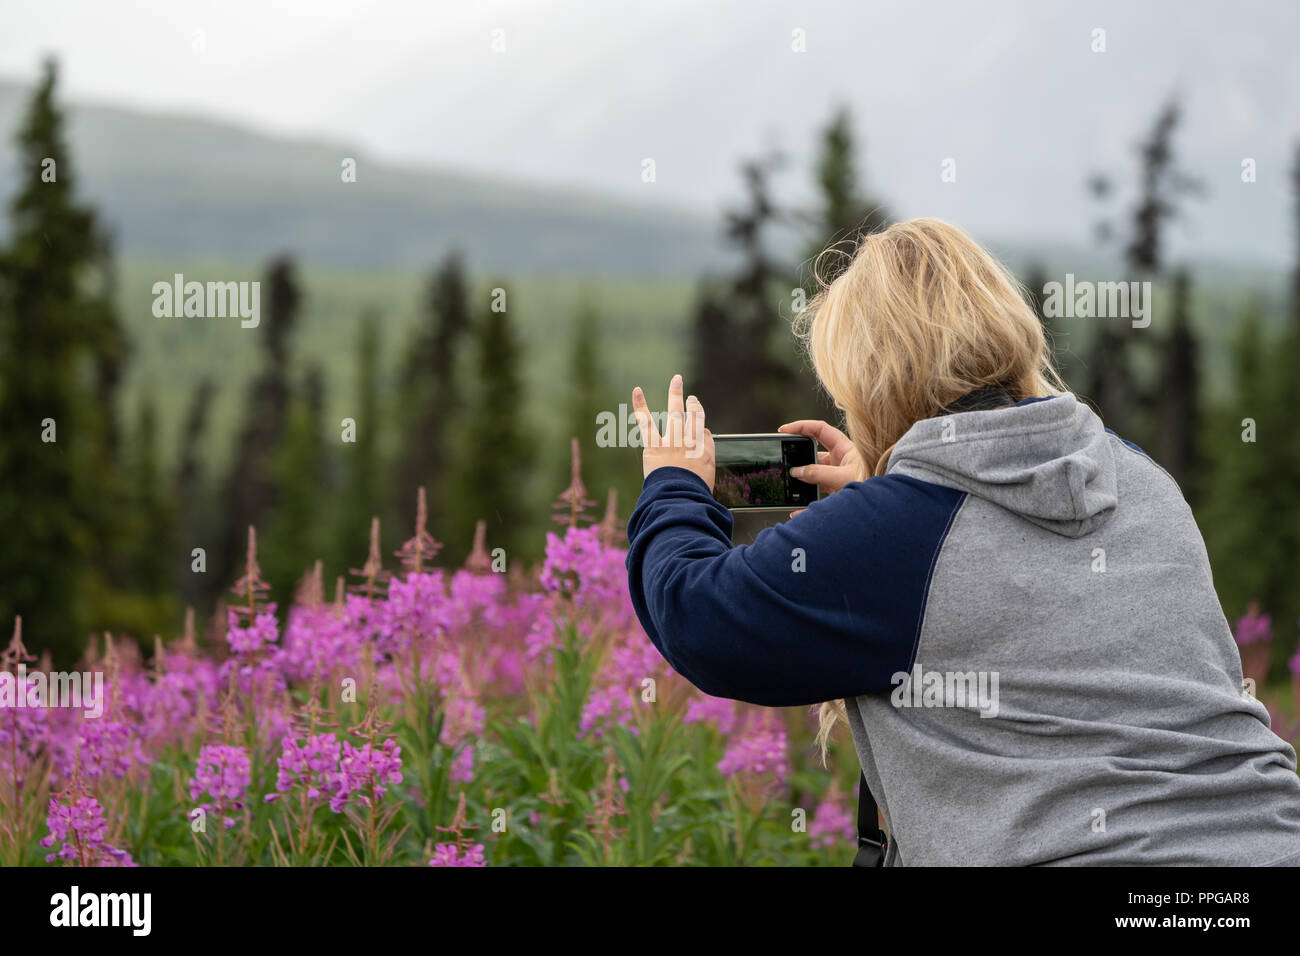 Blonde woman takes photos of Alaska fireweed wildflowers with her smart phone - Stock Image